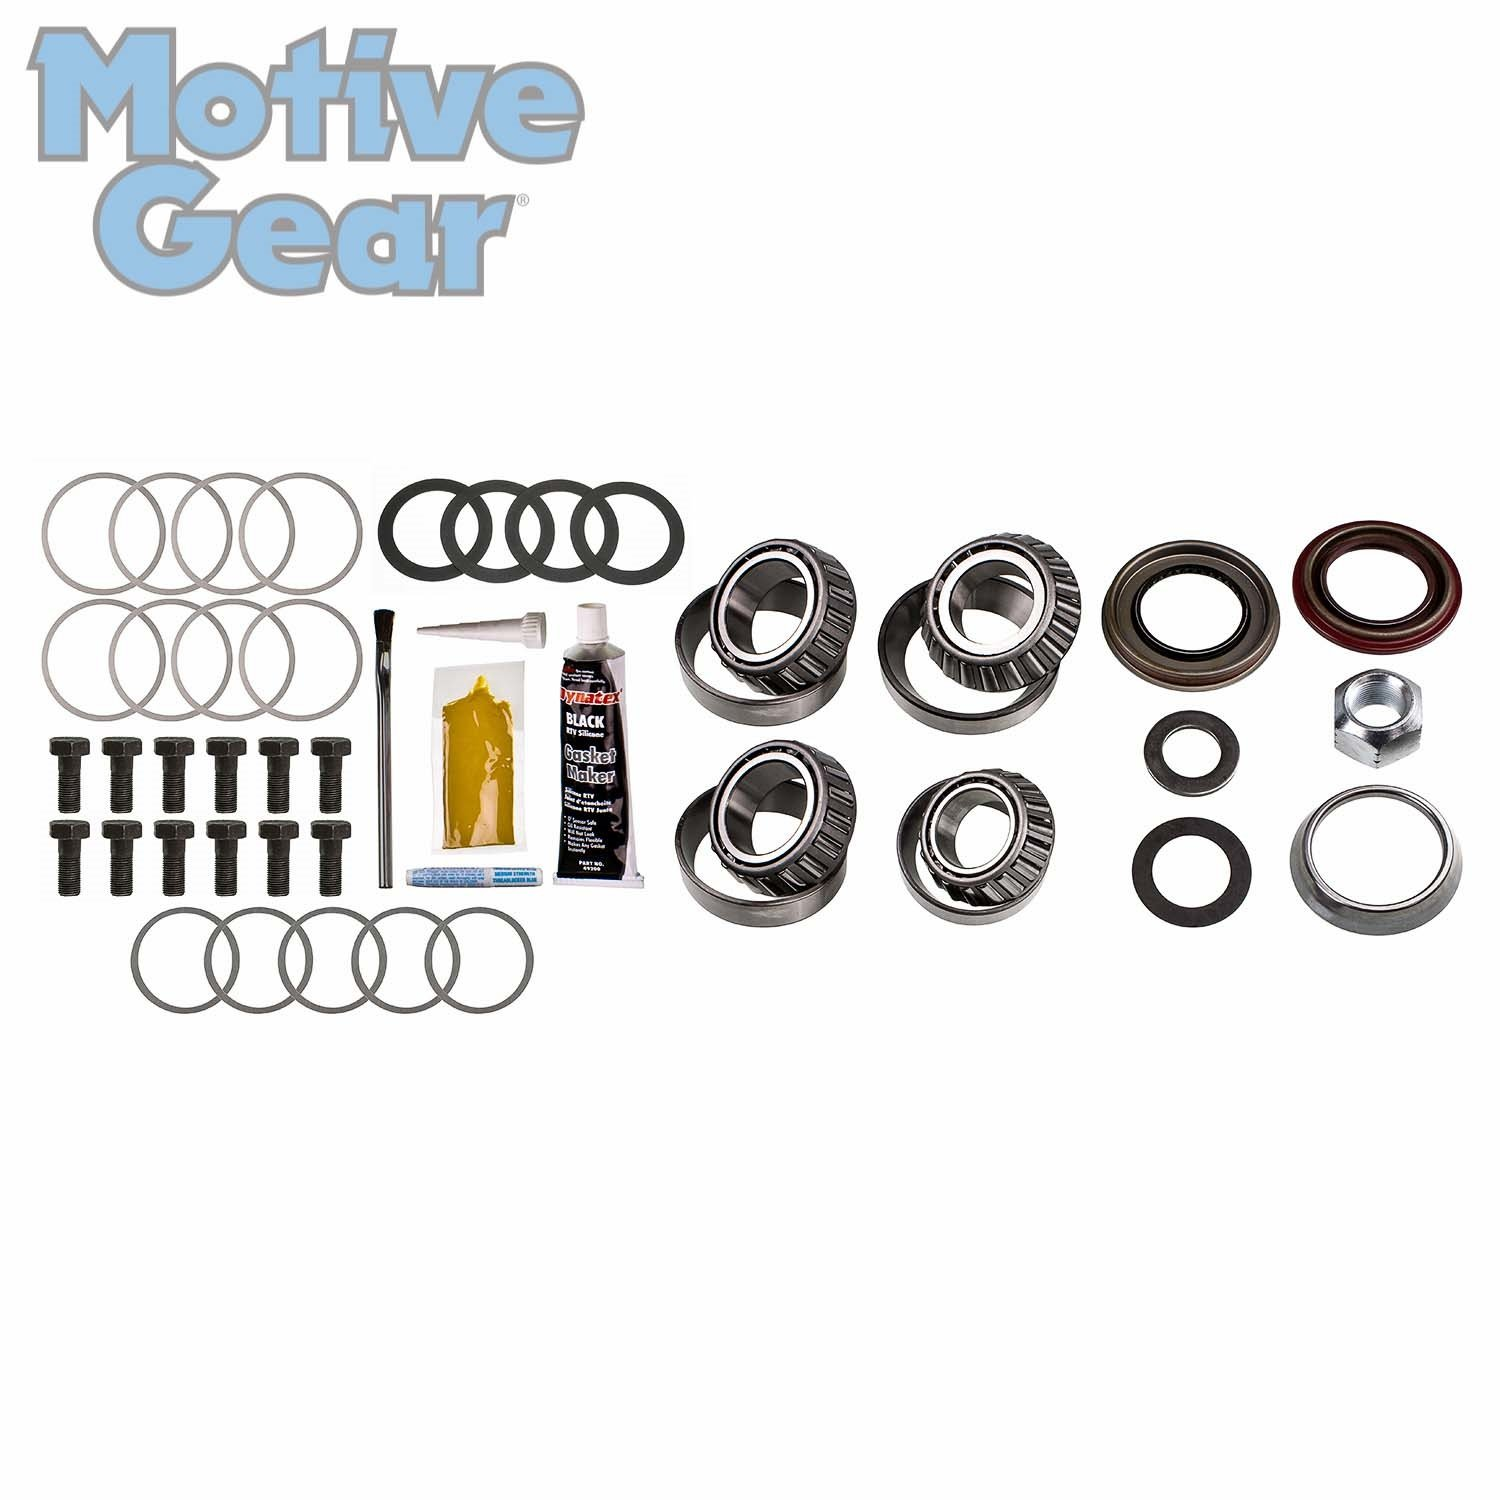 Motive Gear R80RAMKT Master Bearing Kit with Timken Bearings (DANA 80 Ford '99-ON)